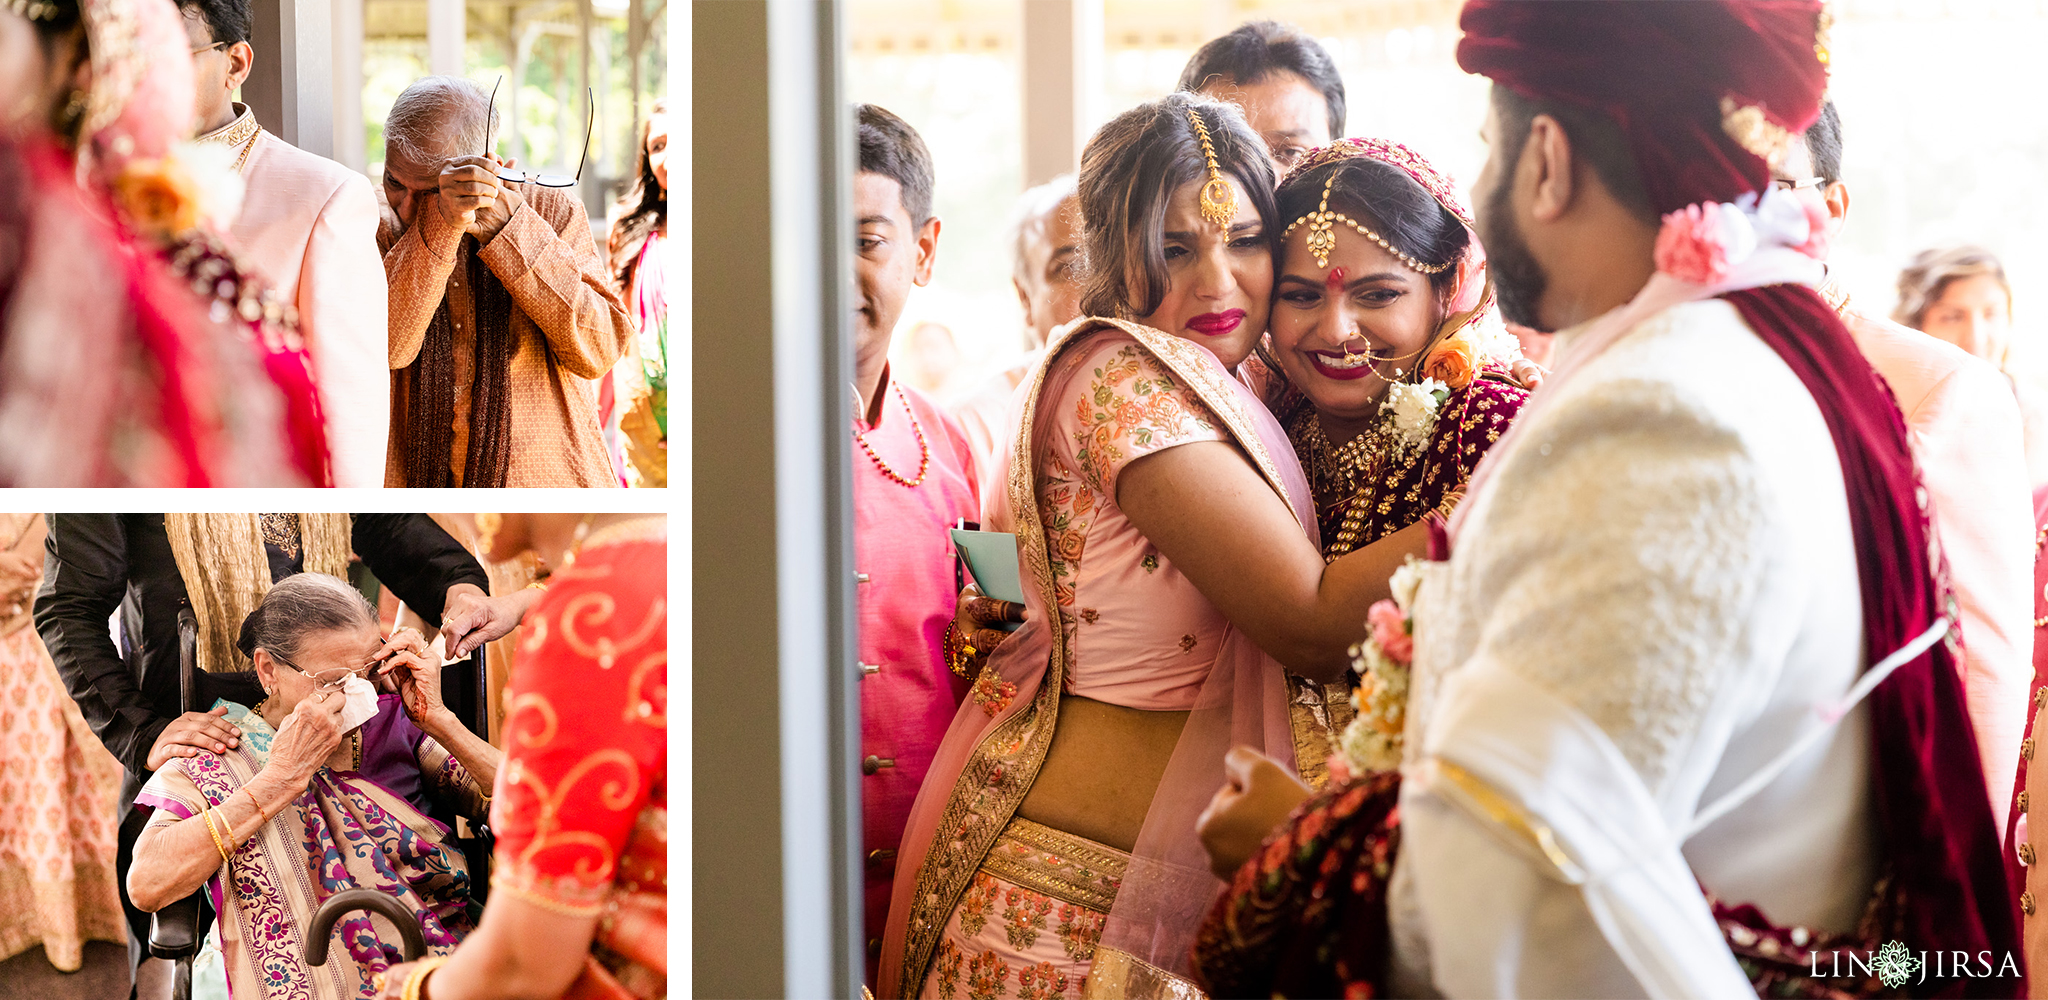 29 Delta Hotels Chesapeake Norfolk Virginia Indian Wedding Photography